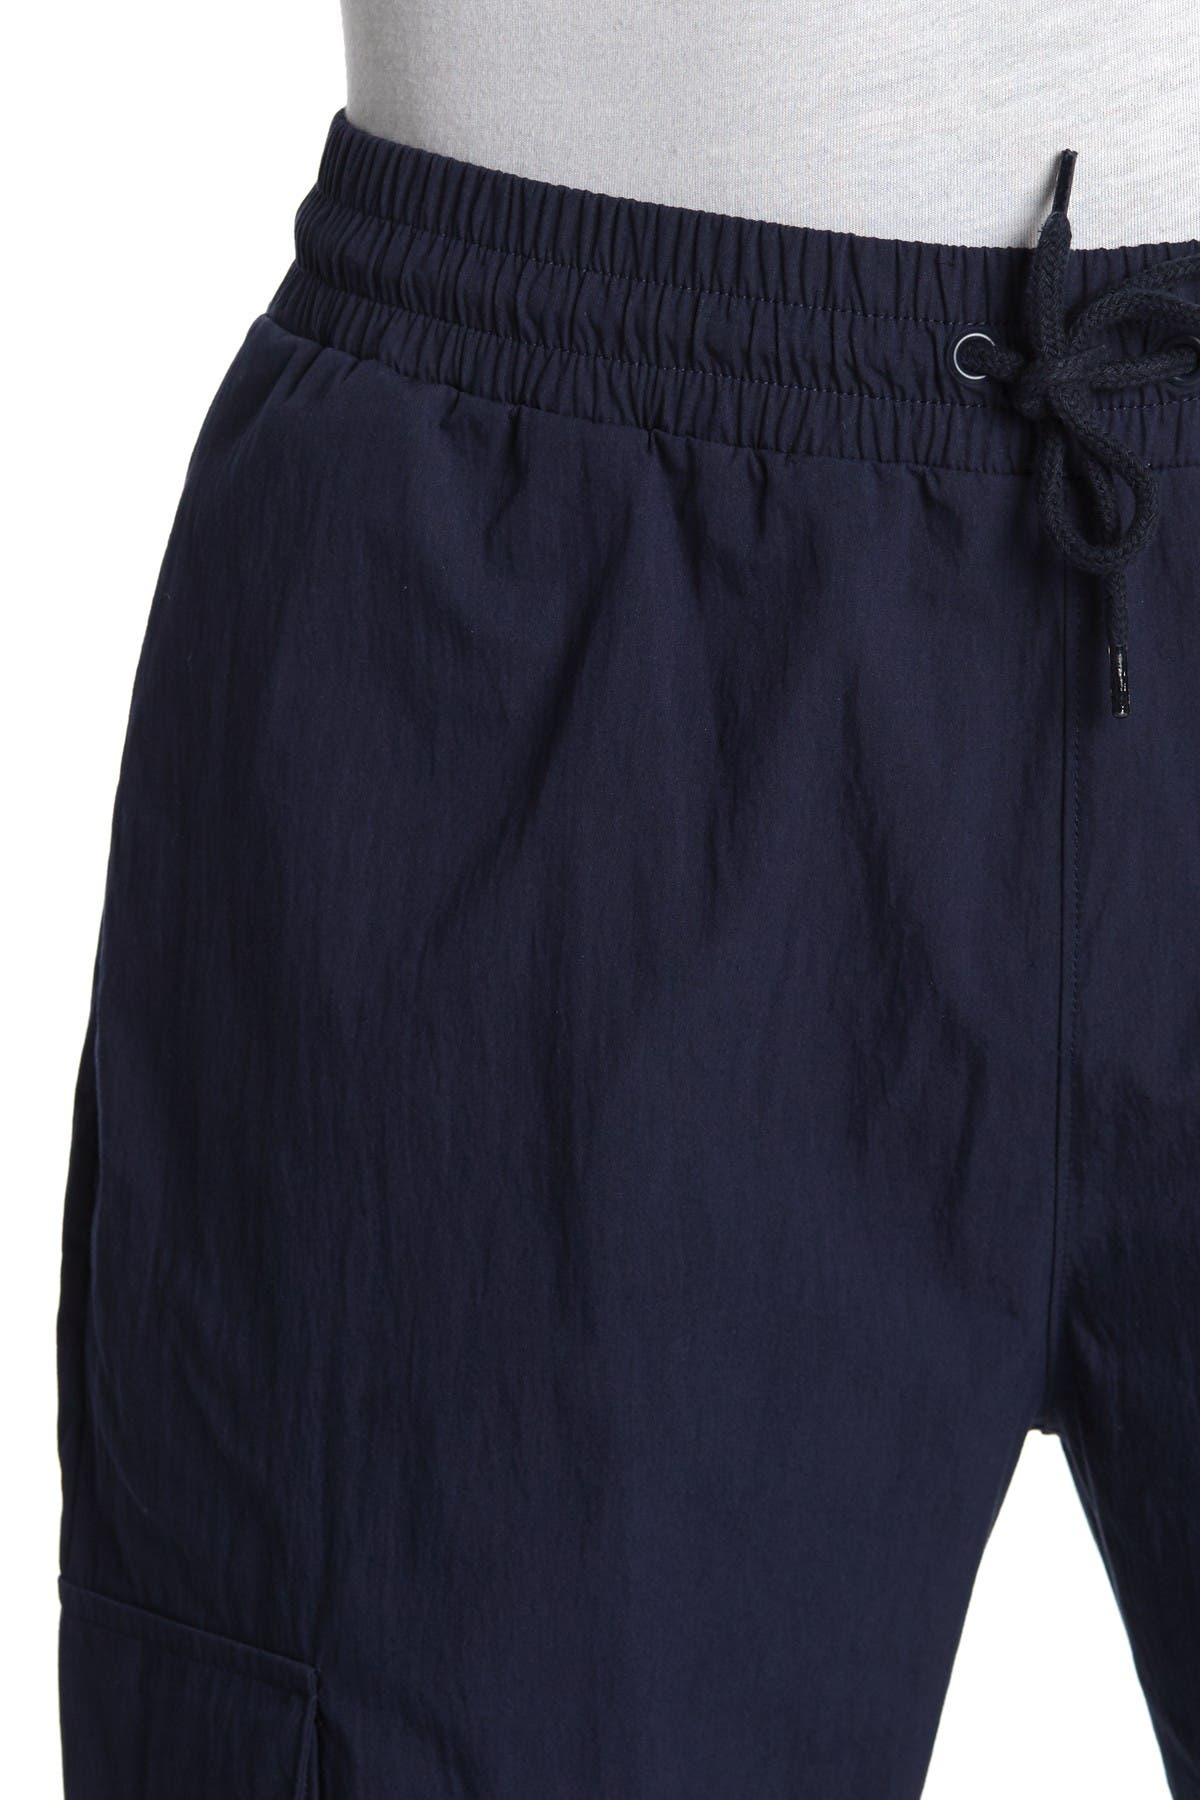 Image of Spalding Branded Utility Joggers